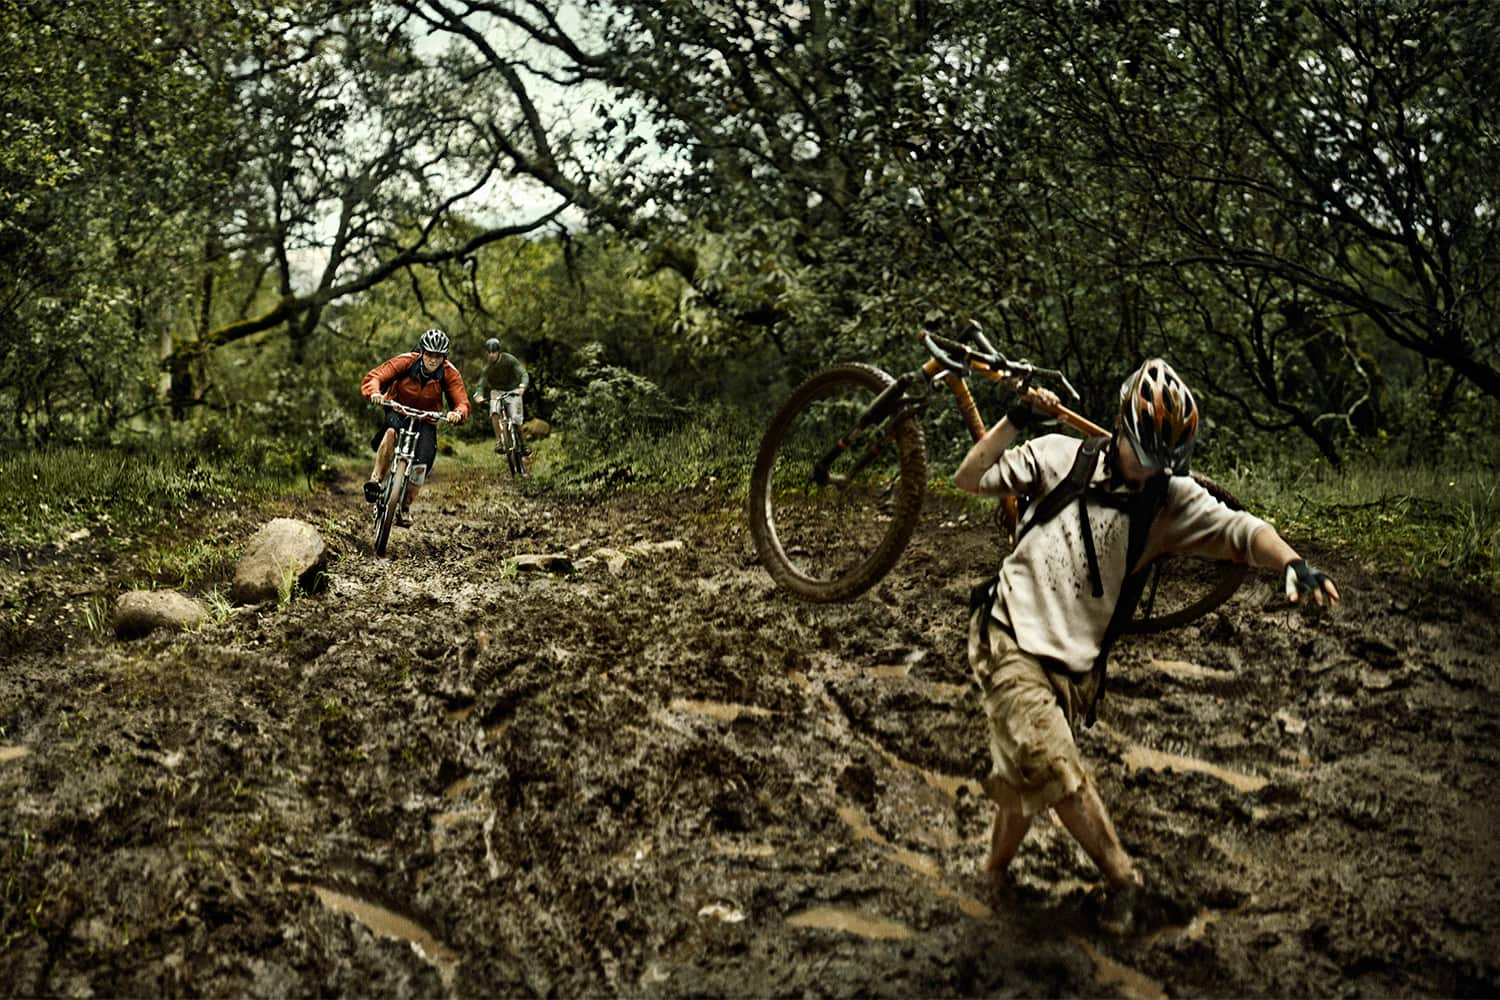 Athletic-Lifestyle-mountain-bikers-biking-in-the-mud-Rod-McLean